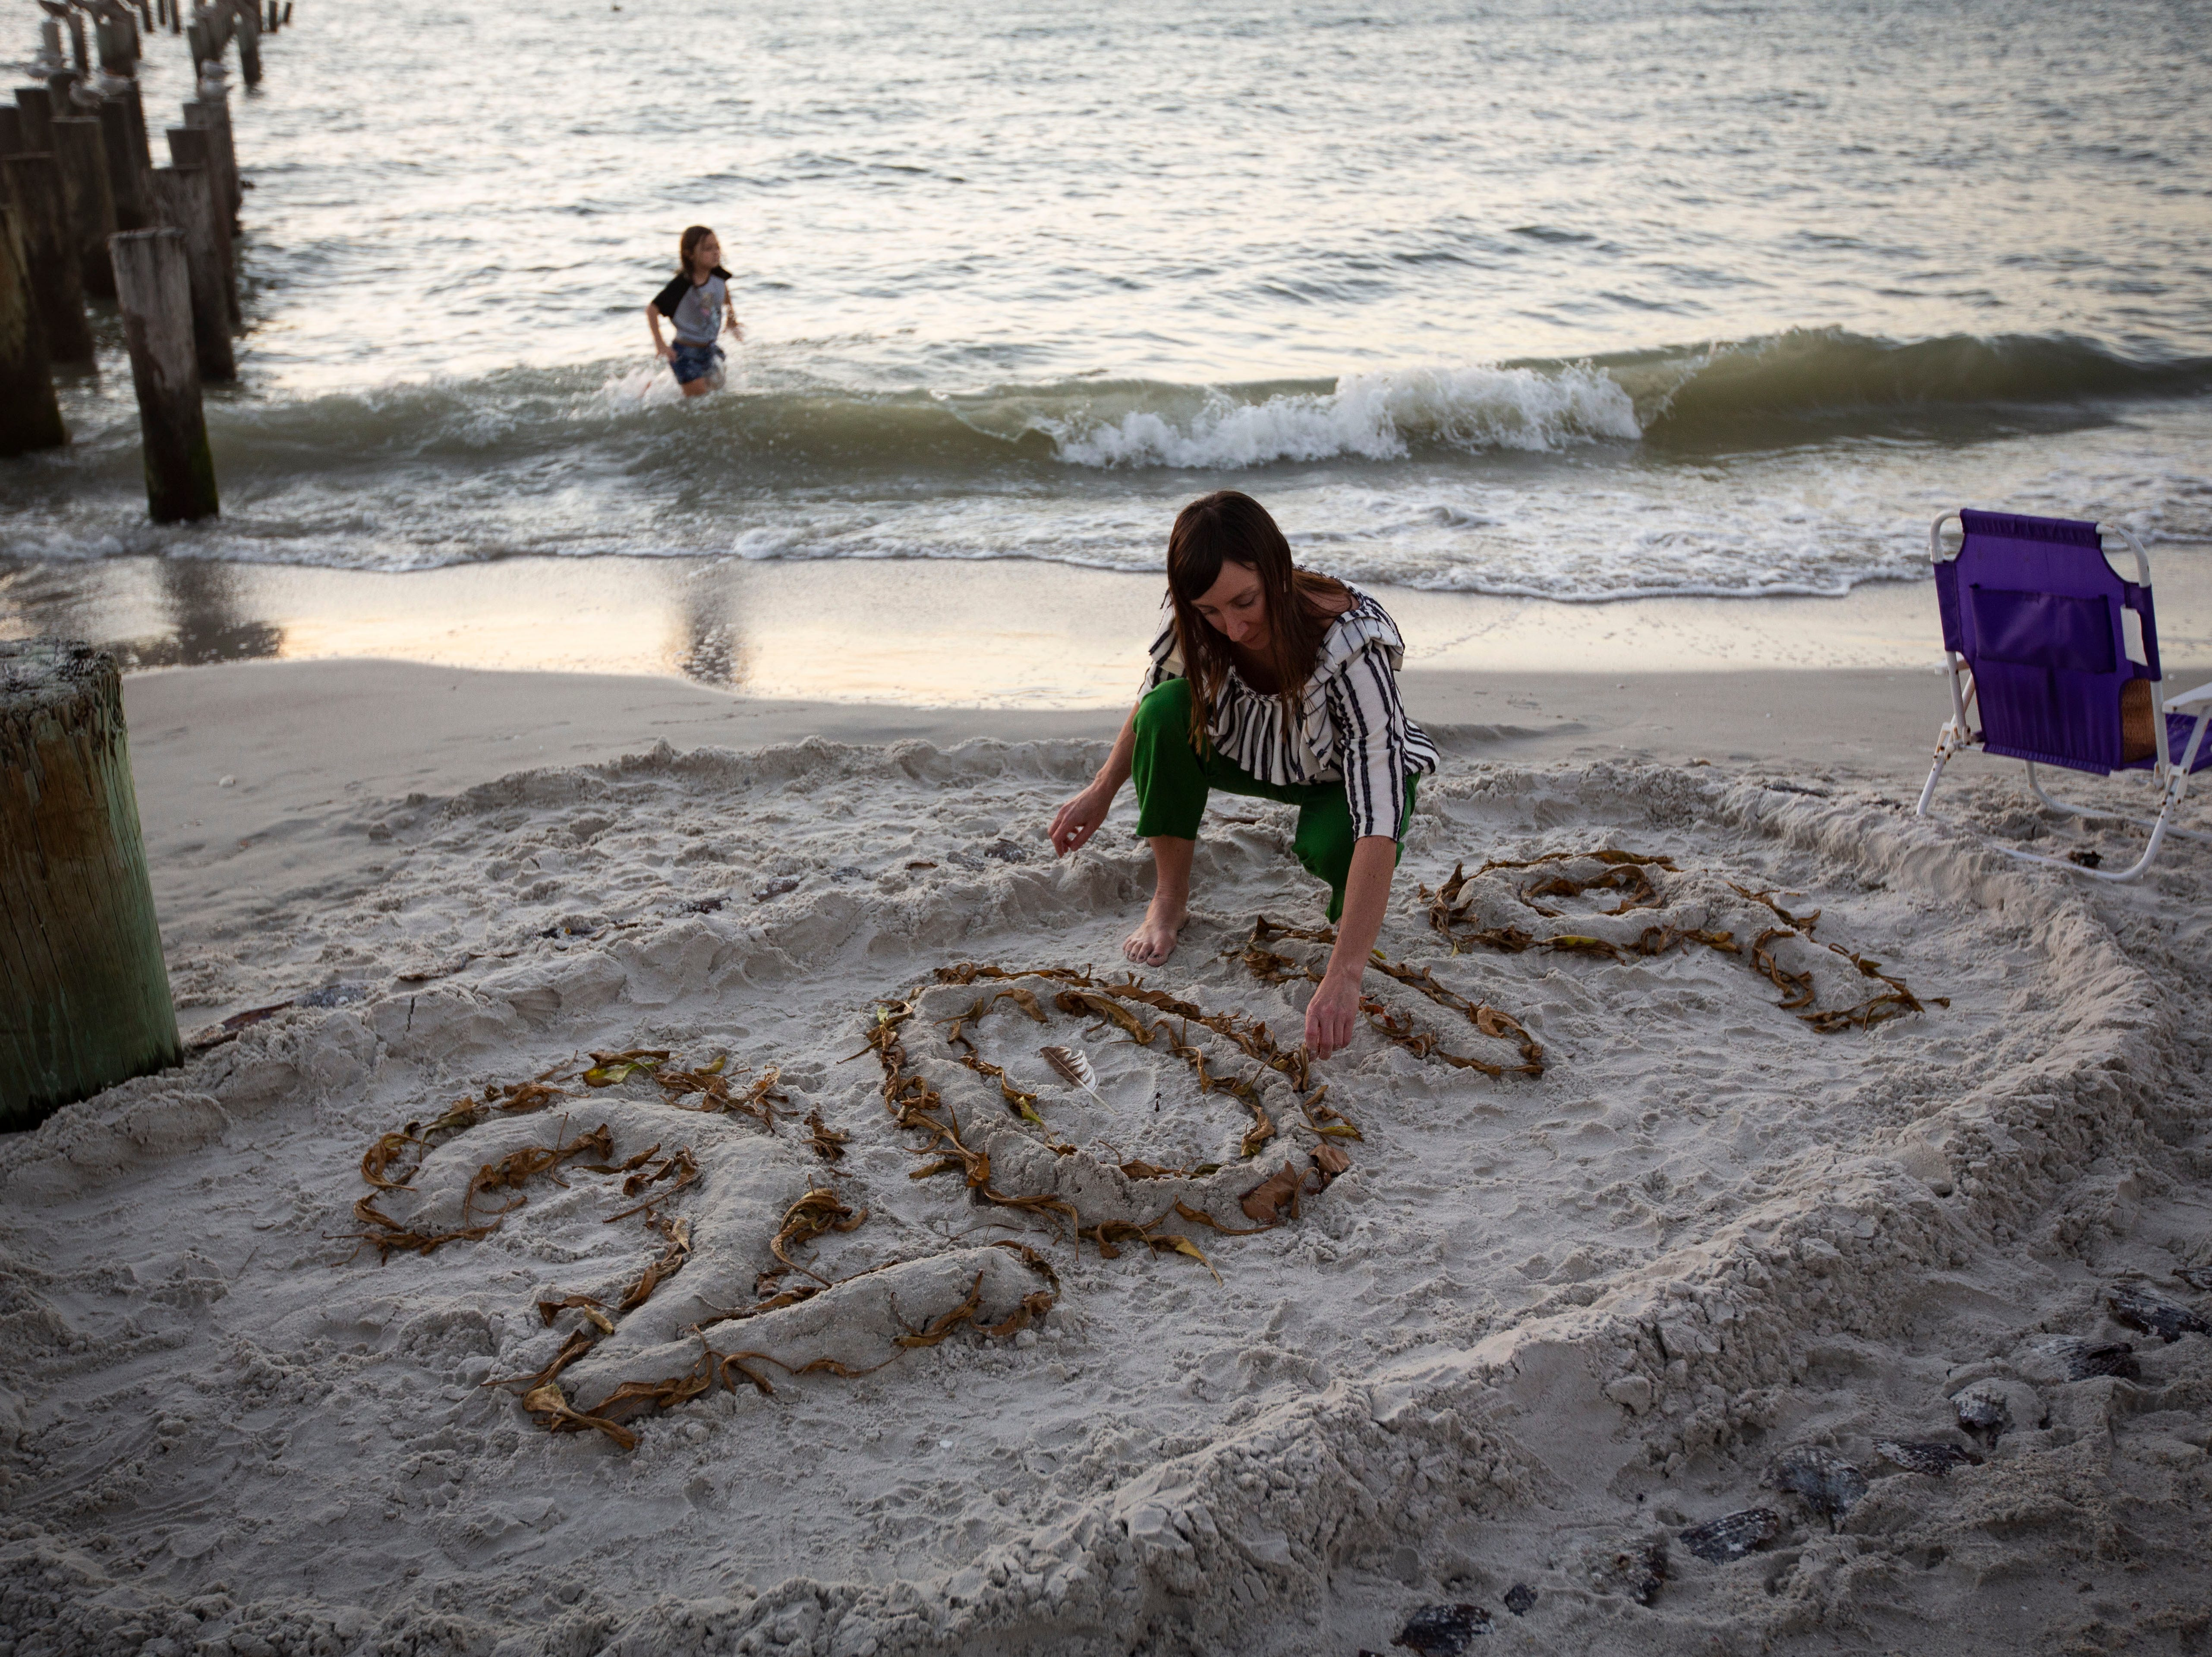 "Ann Schellinger decorates a hand-made new year's sign with seaweed, shells, and stones on Monday, Dec. 31, 2018, at the Naples Pier beach before the start of the annual fireworks. ""This is a Schellinger family tradition,"" Ann said. This tradition was initiated nearly three years back when they saw someone else make a similar sign in the sand."